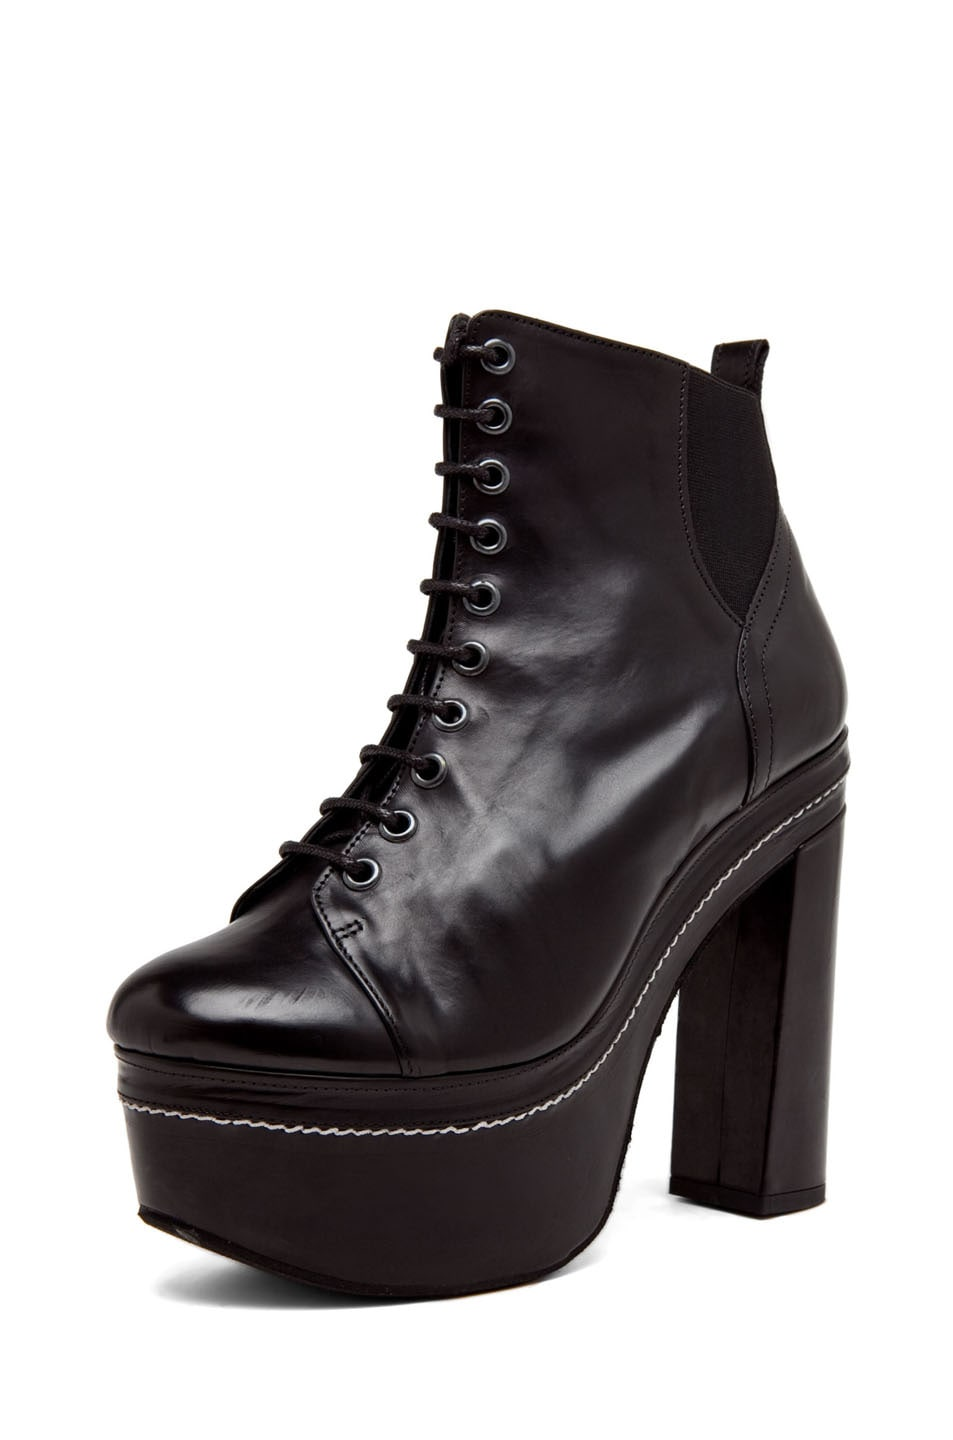 Image 2 of Opening Ceremony Bernadette Lace Up Bootie in Black